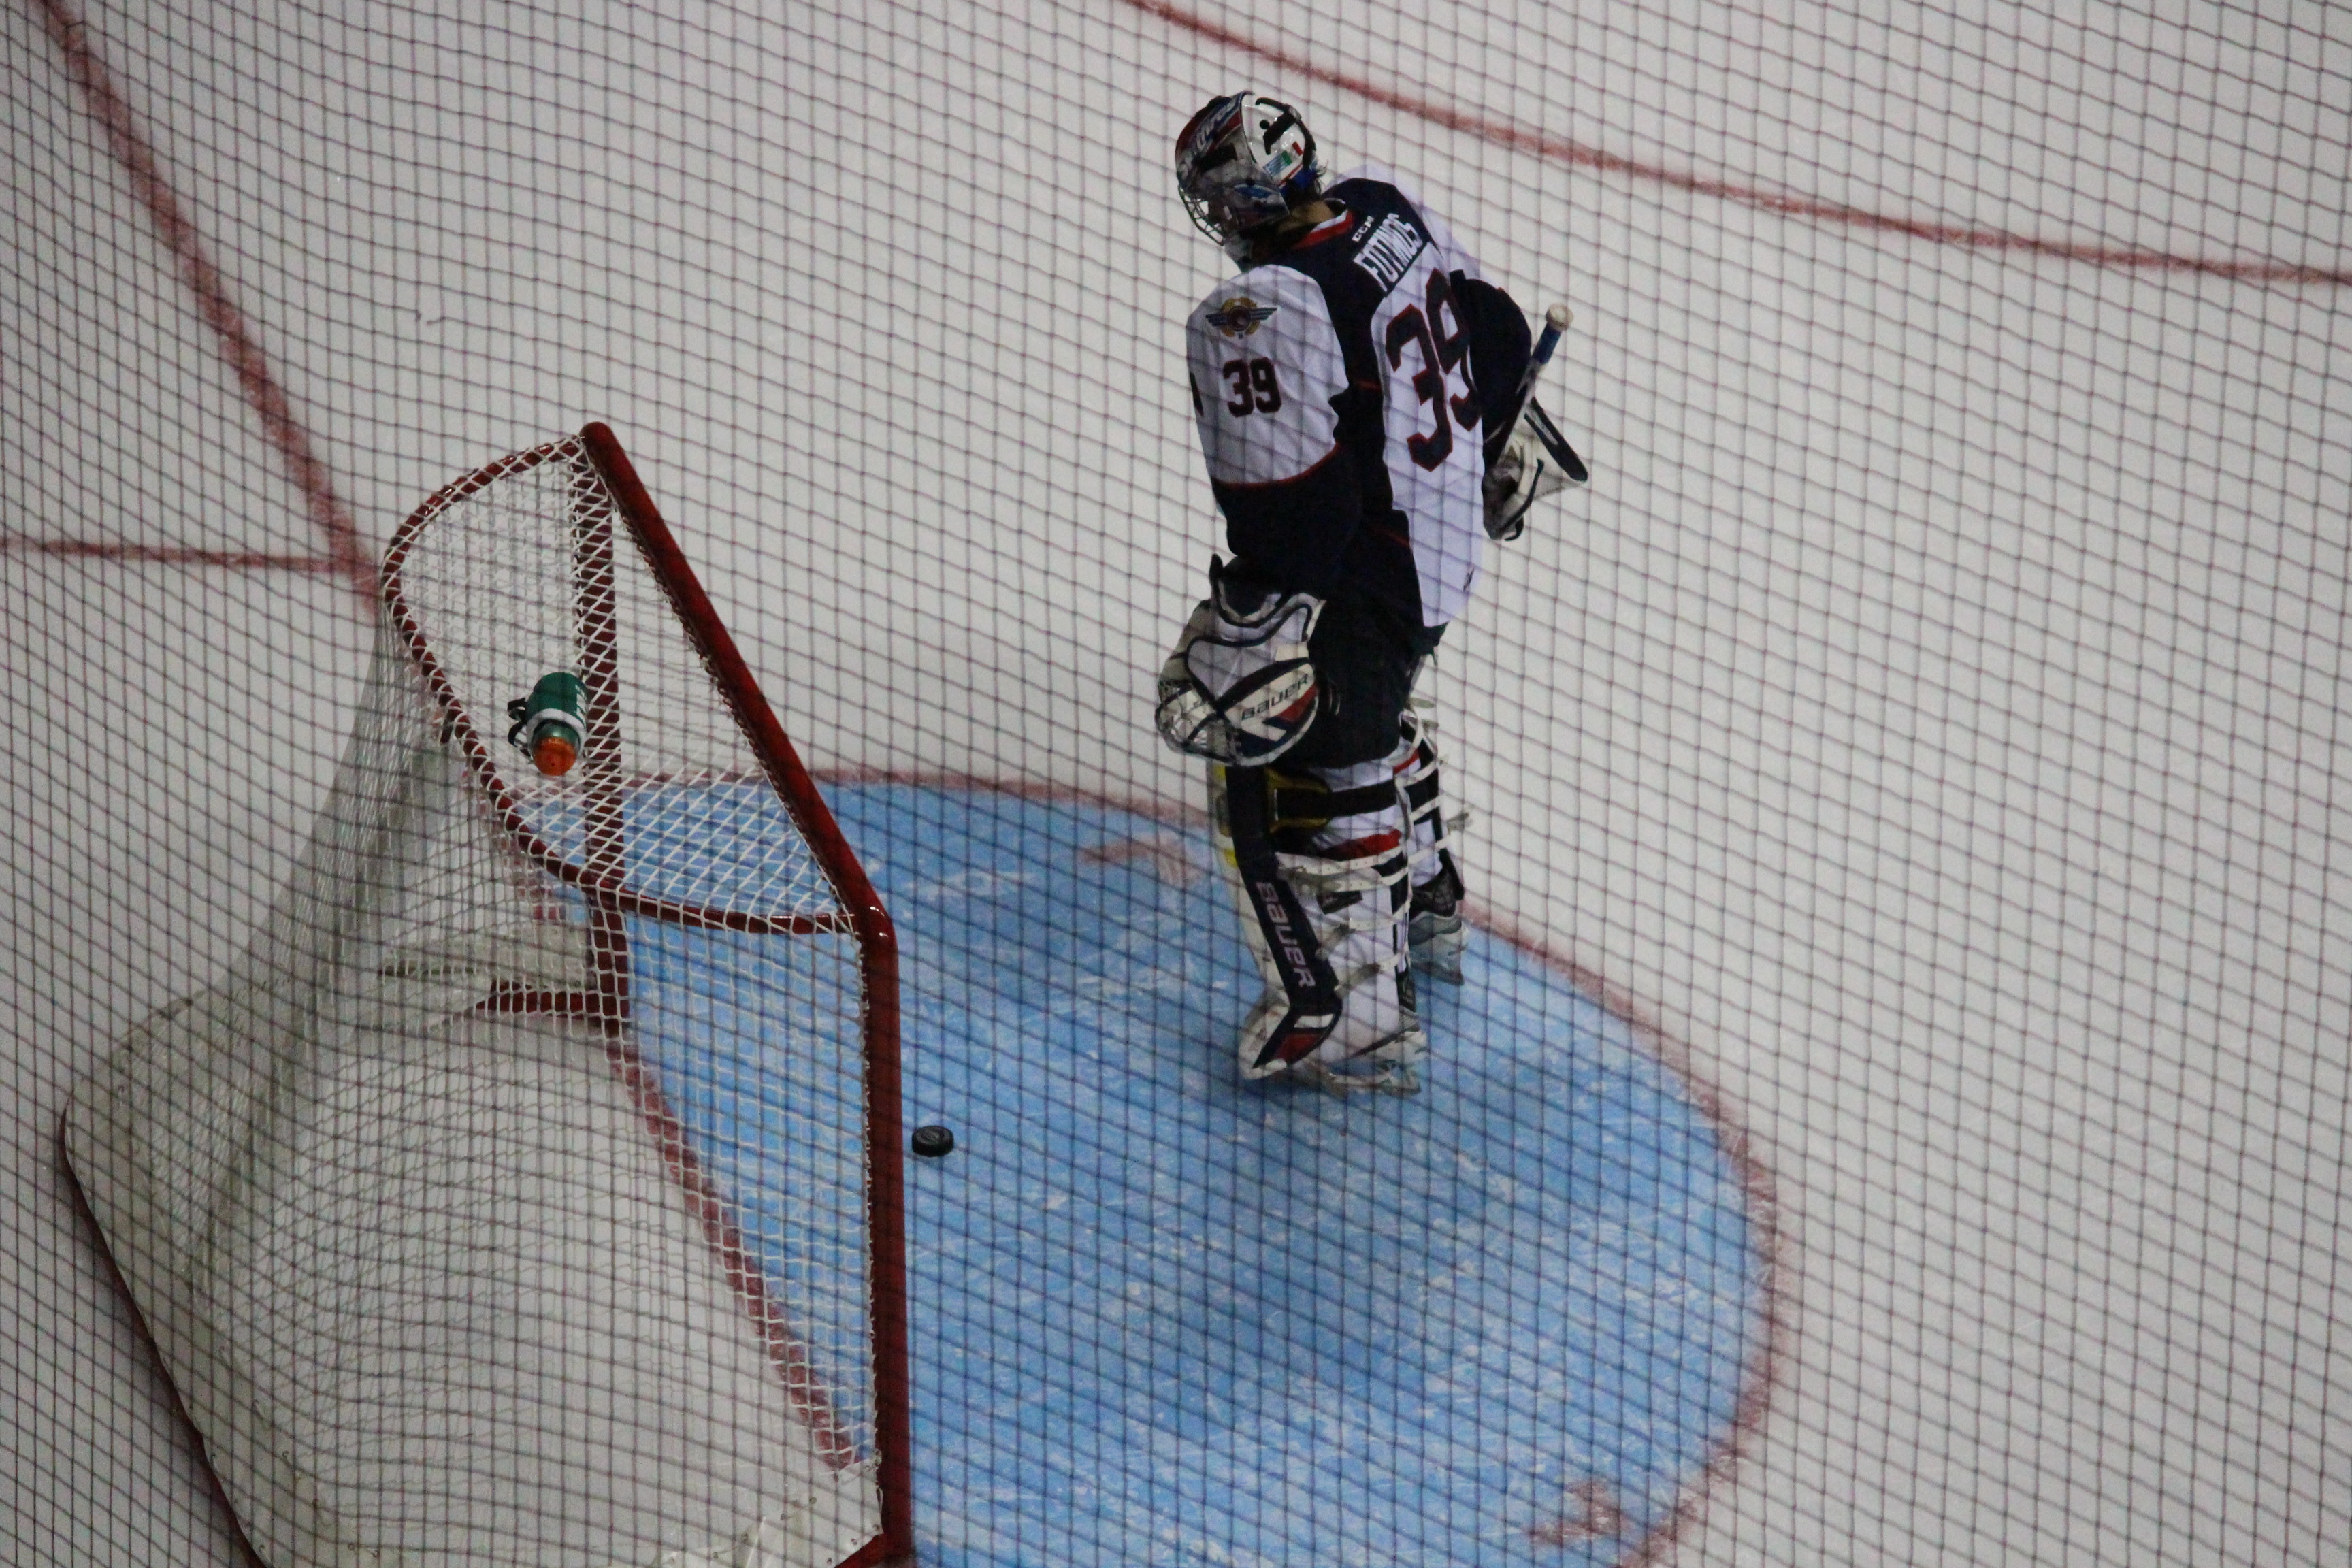 The Windsor Spitfires lose 2-1 against the Guelph Storm September 28, 2014. (Photo by Jason Viau)